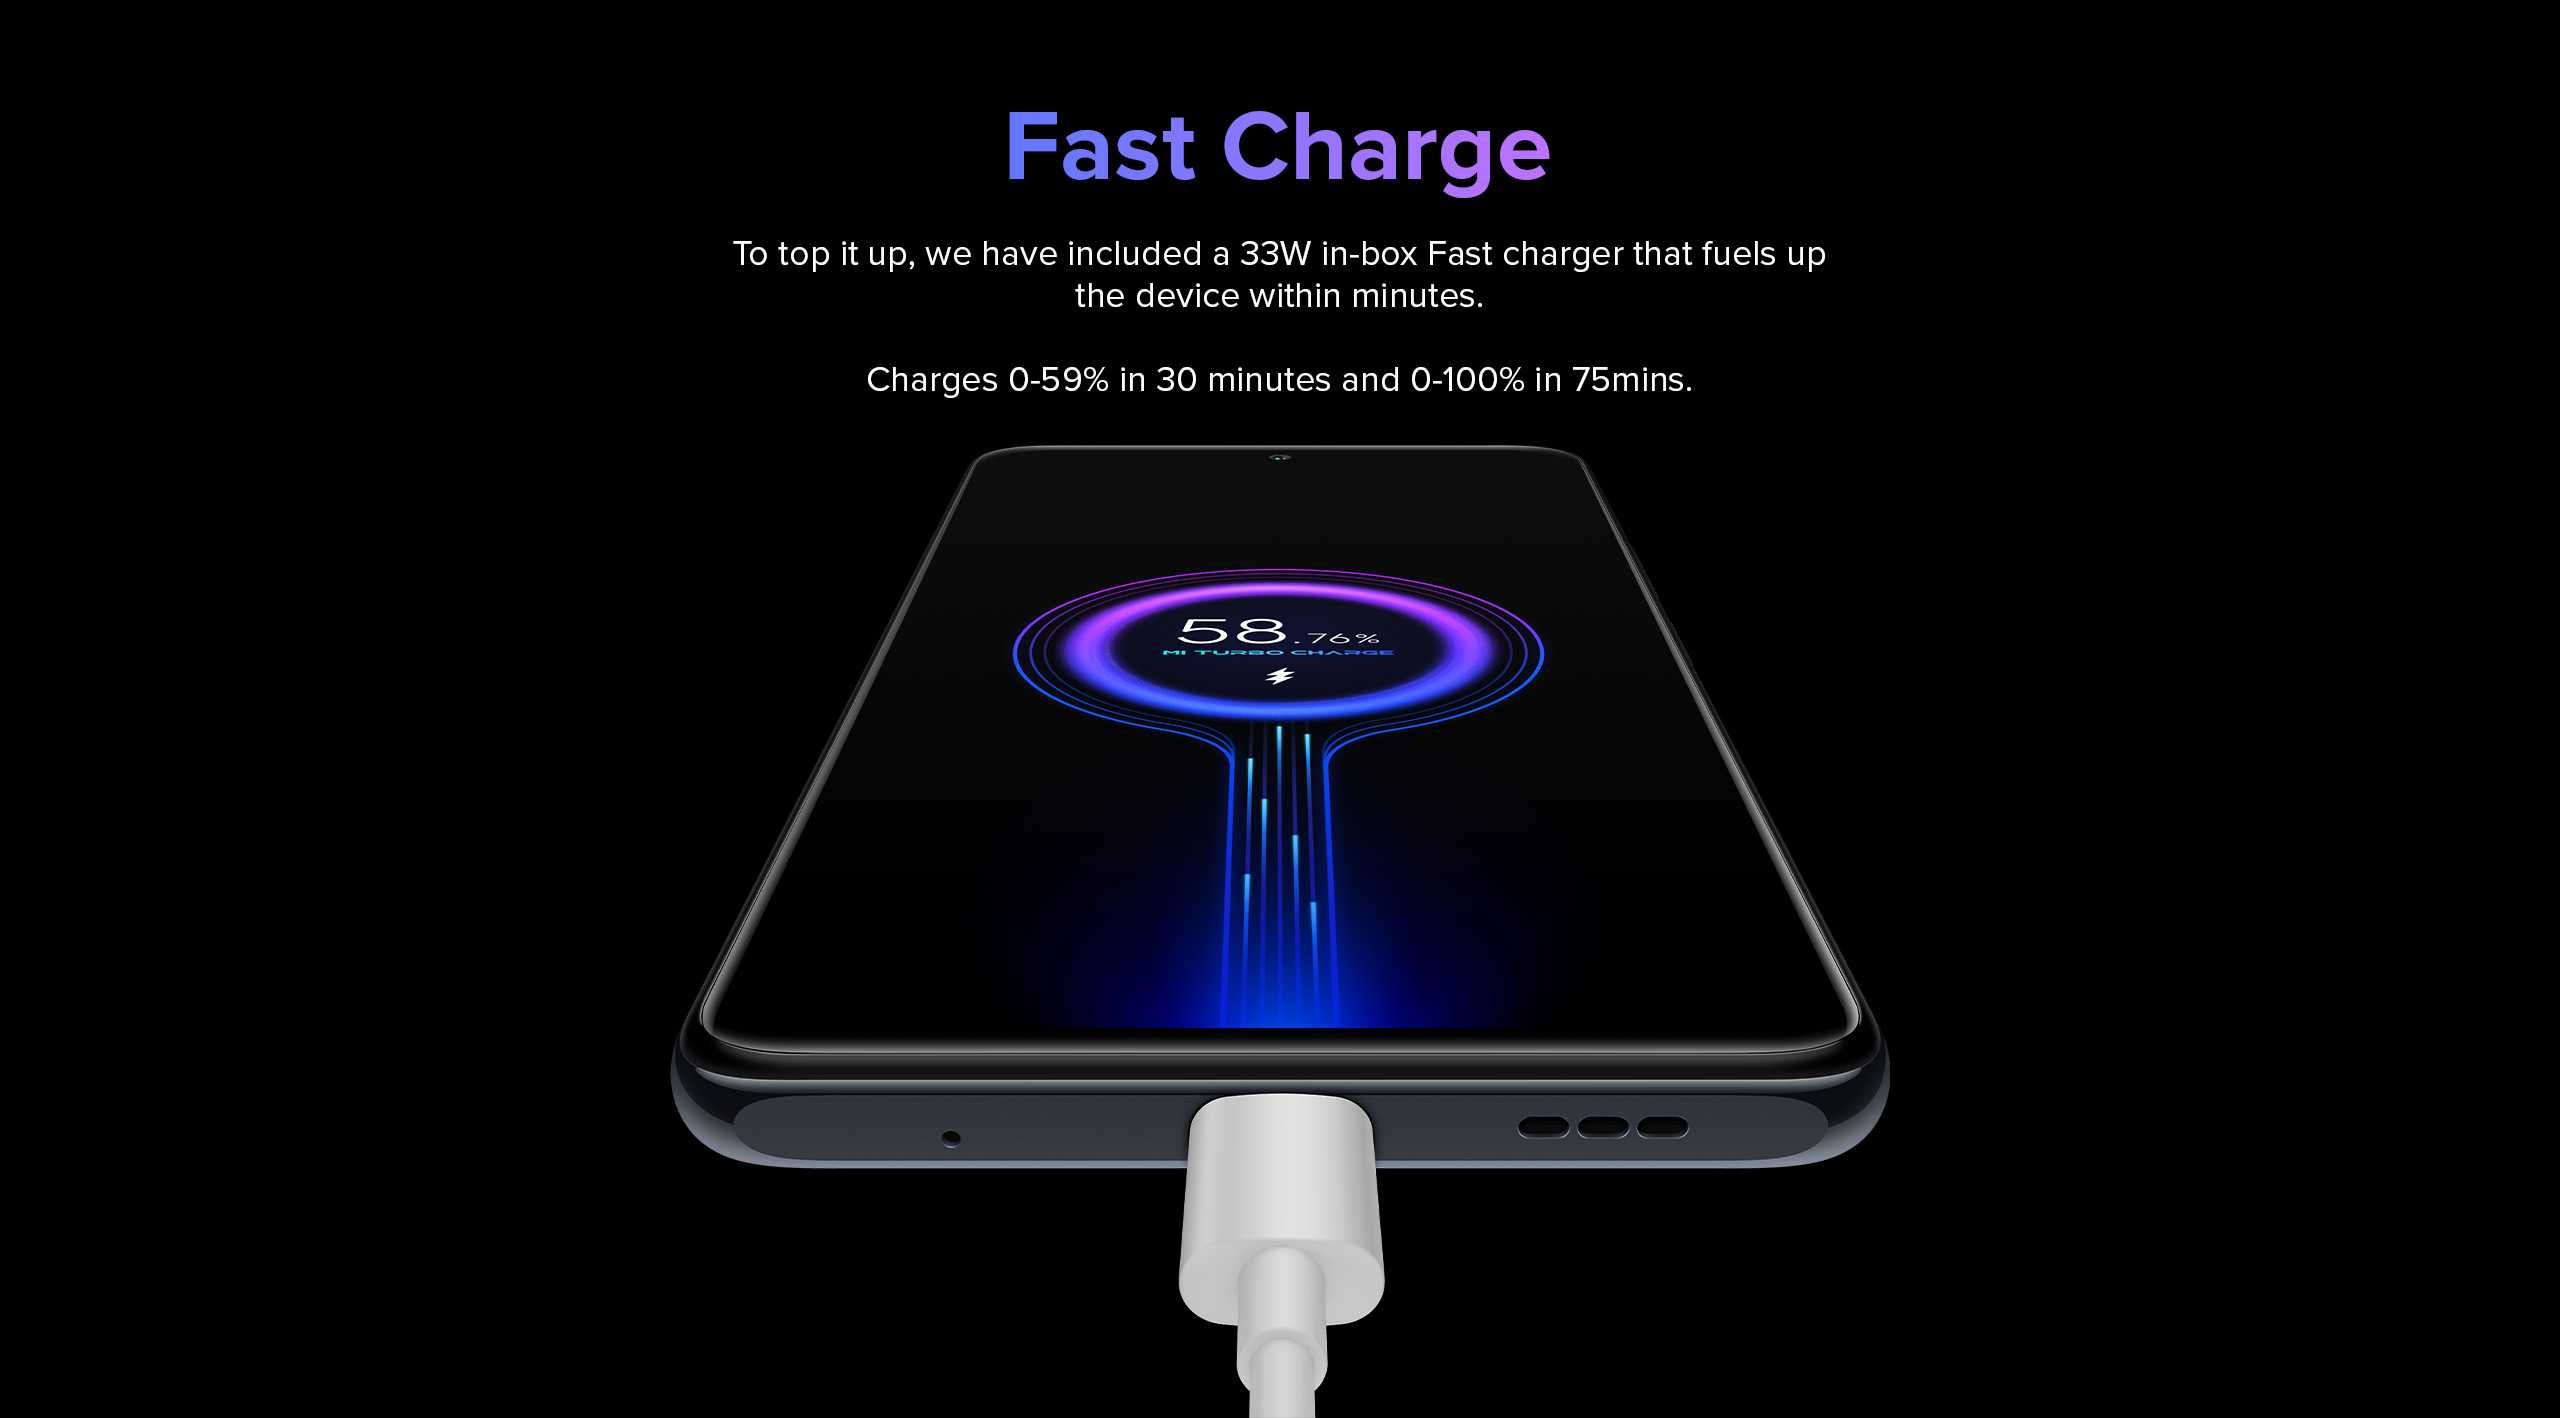 Redmi fast charge